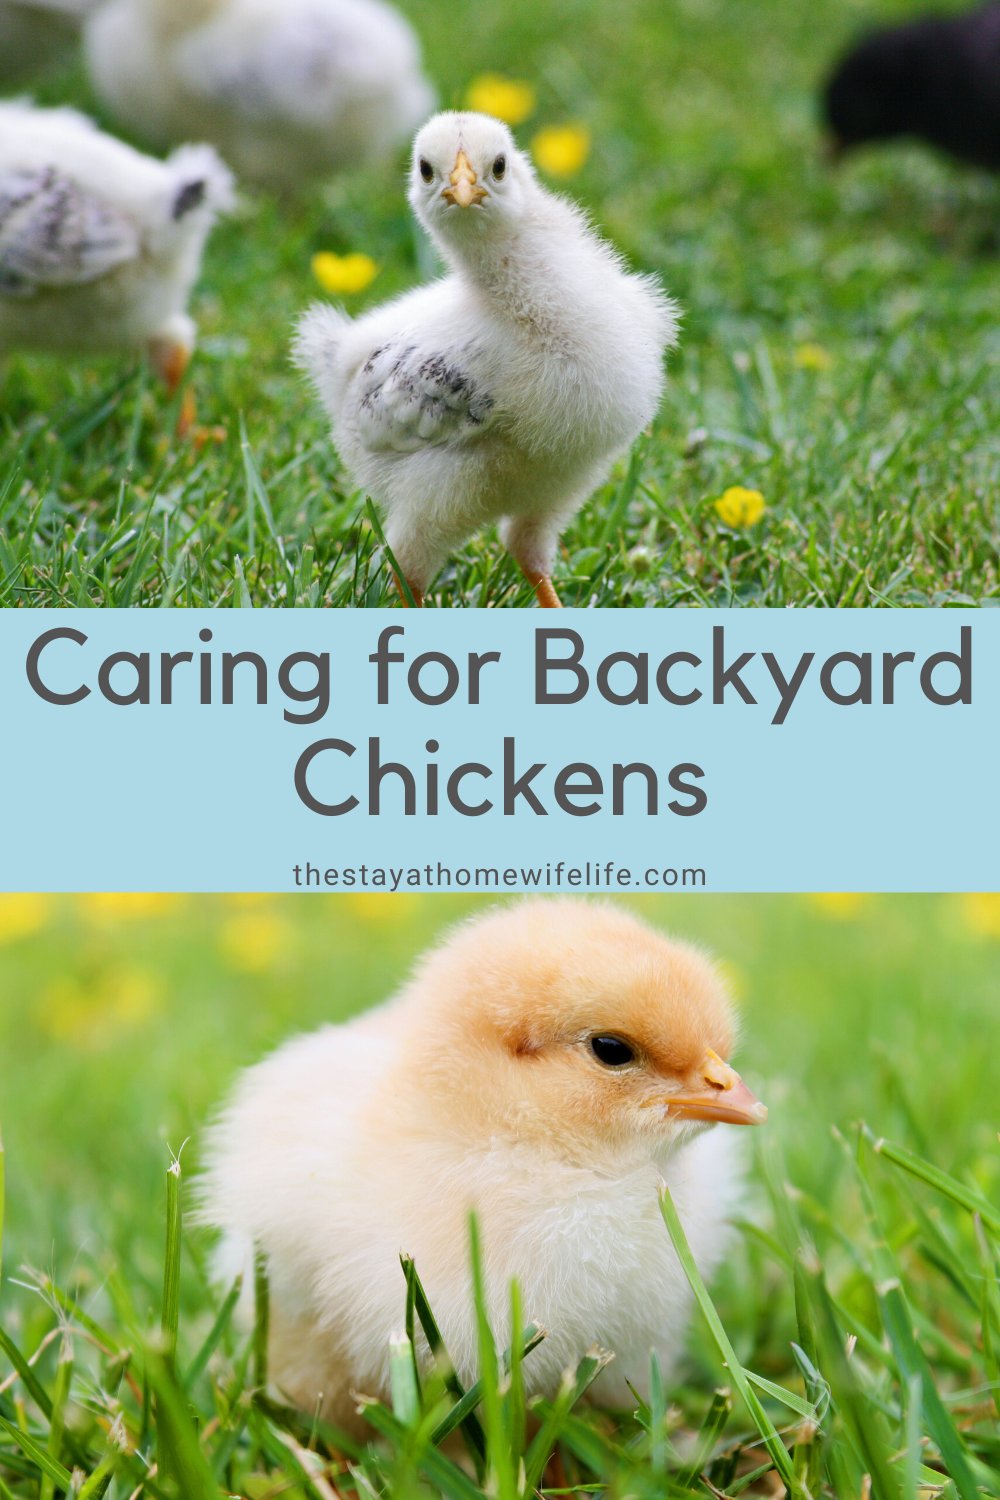 Caring for Backyard Chickens in 2020 | Chickens backyard ...